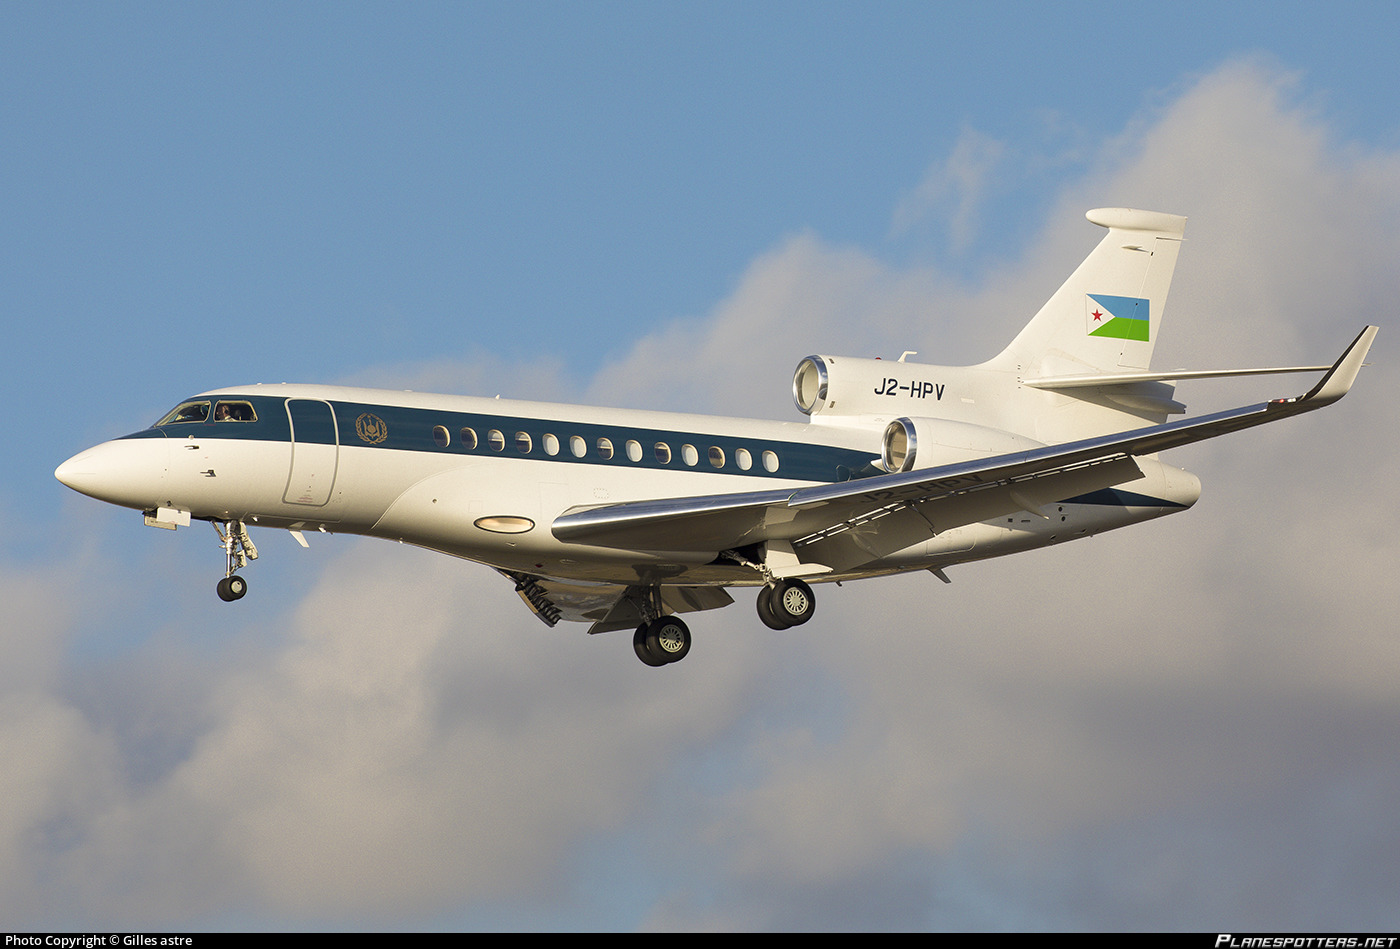 J2-HPV Djibouti Government Dassault Falcon 7X photographed at Paris Le Bourget (LBG / LFPB) by Gilles astre